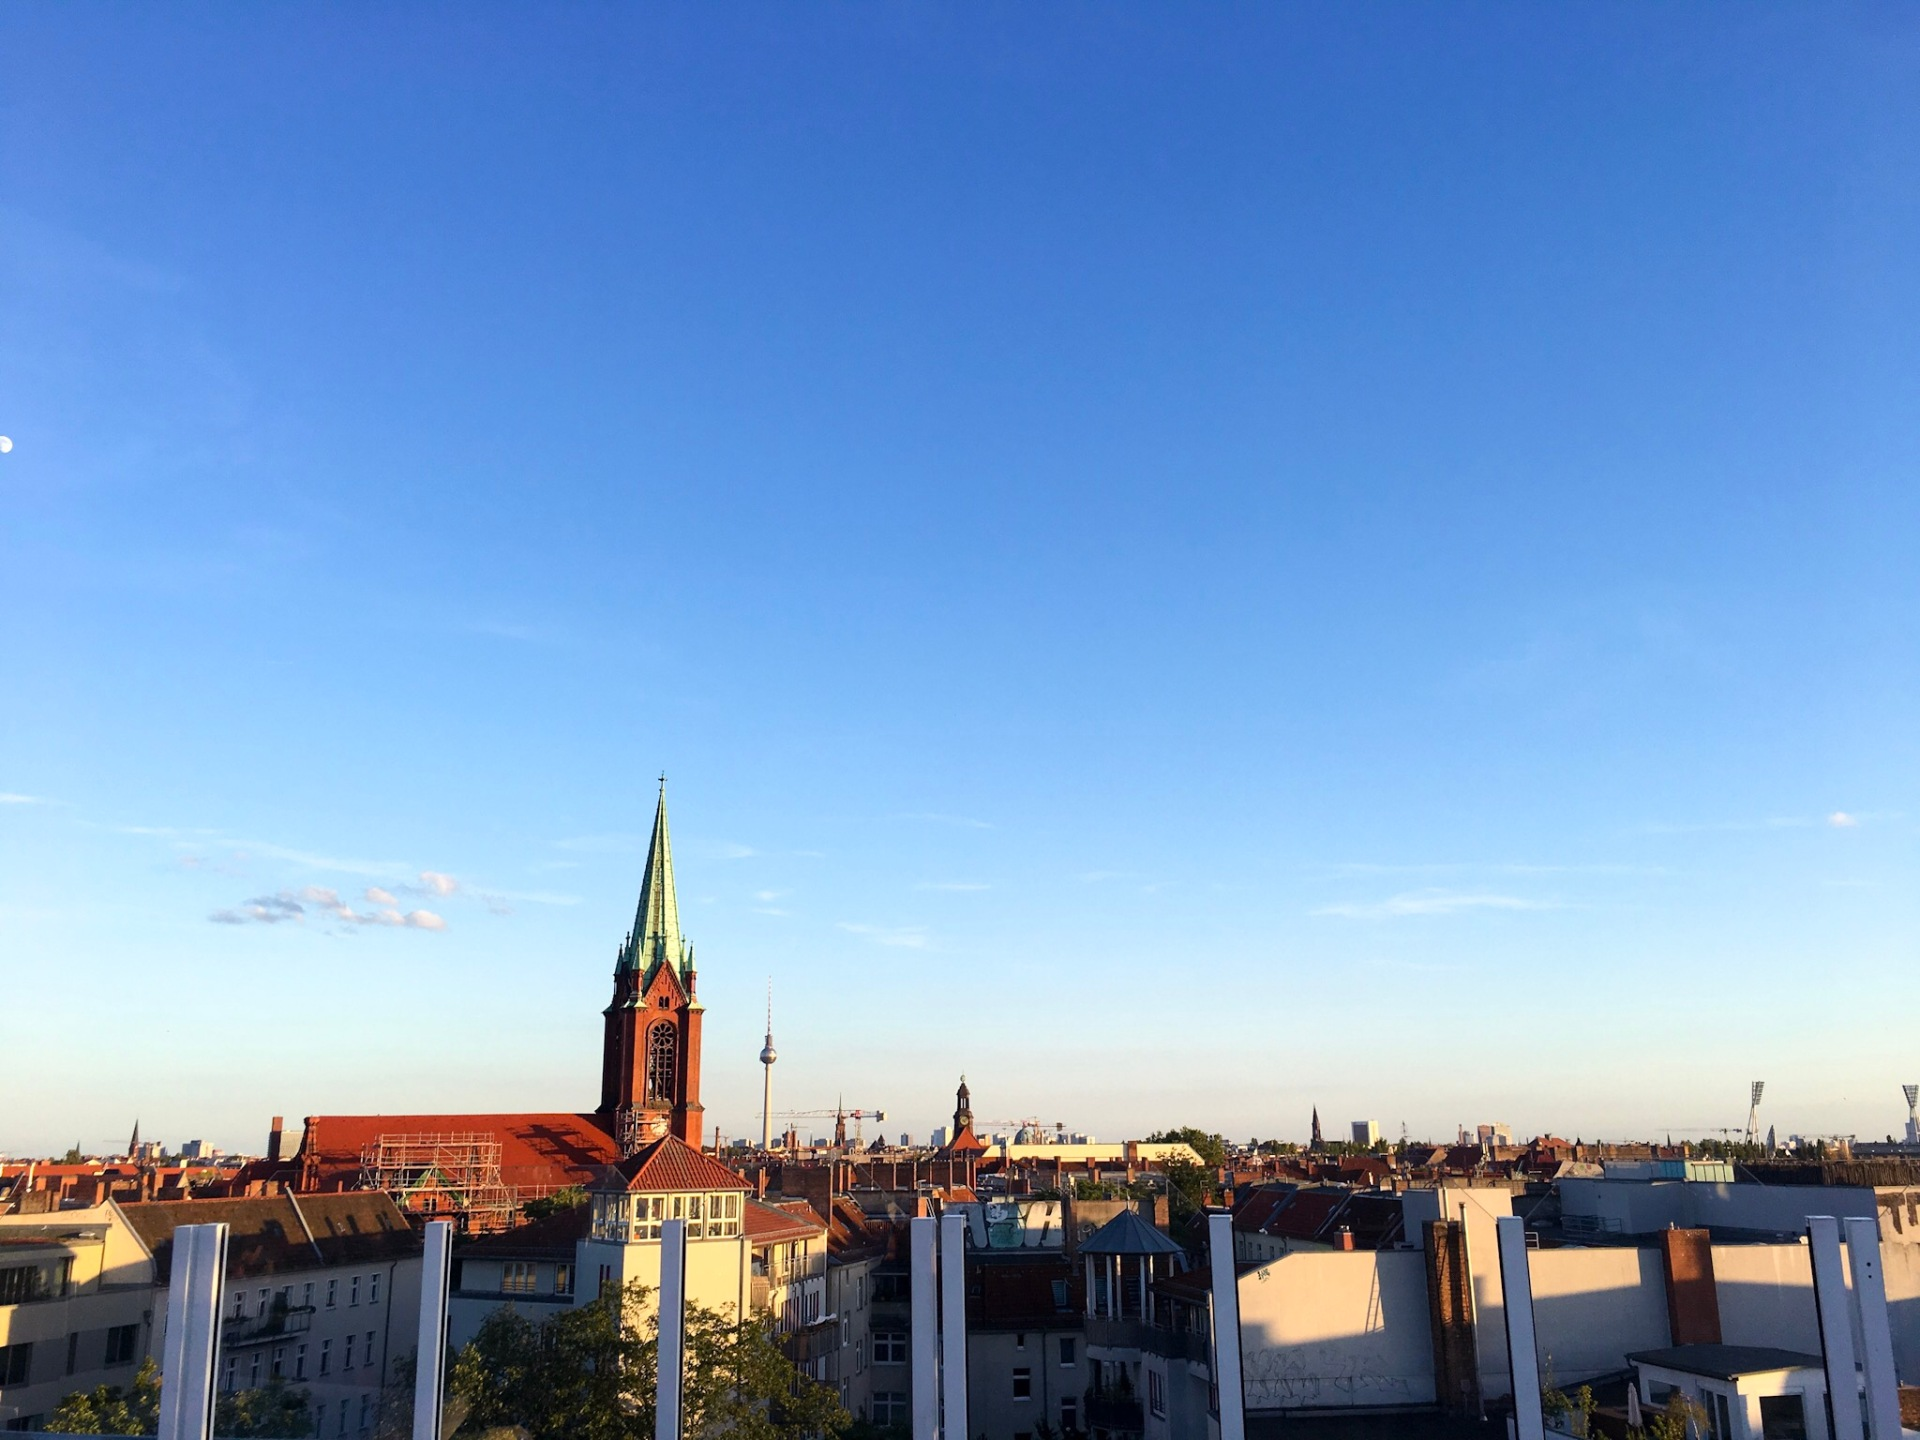 View from Deck 5 in Prenzlauer Berg, Berlin